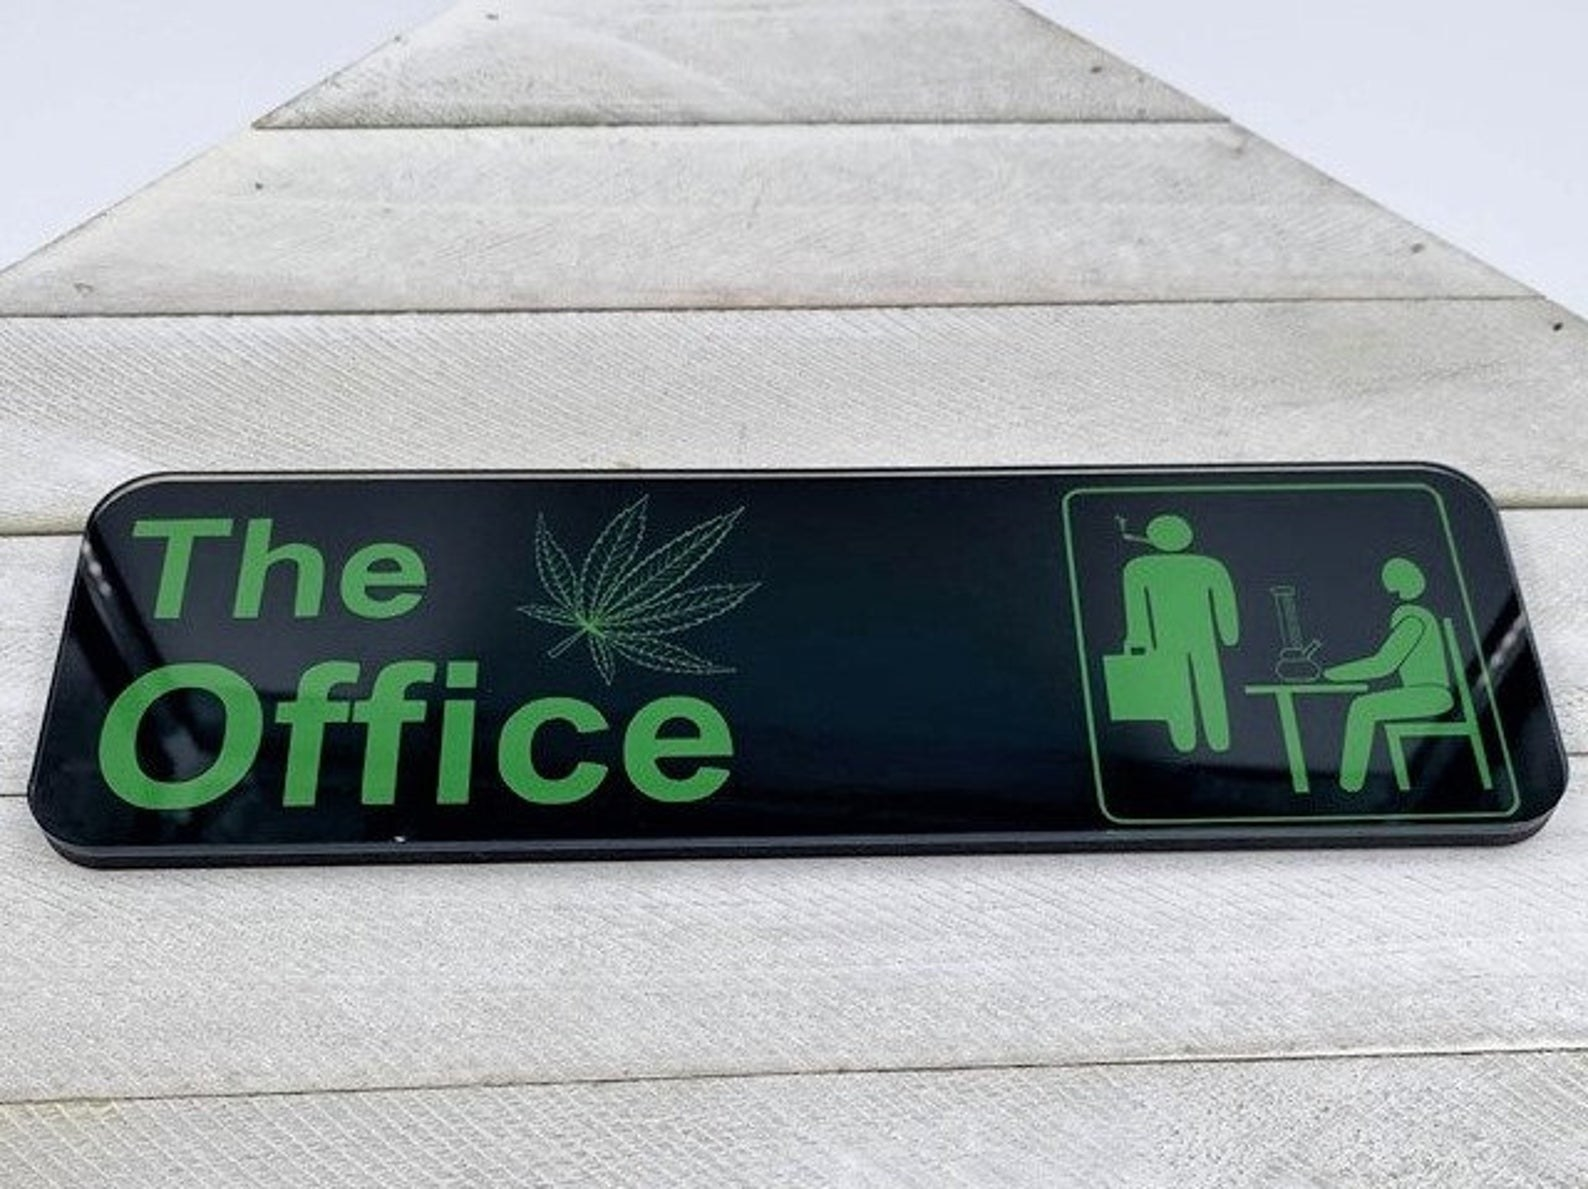 "a black rectangular door sign that says ""The Office"" and has an animated view of a person using a bong and a person smoking a joint"